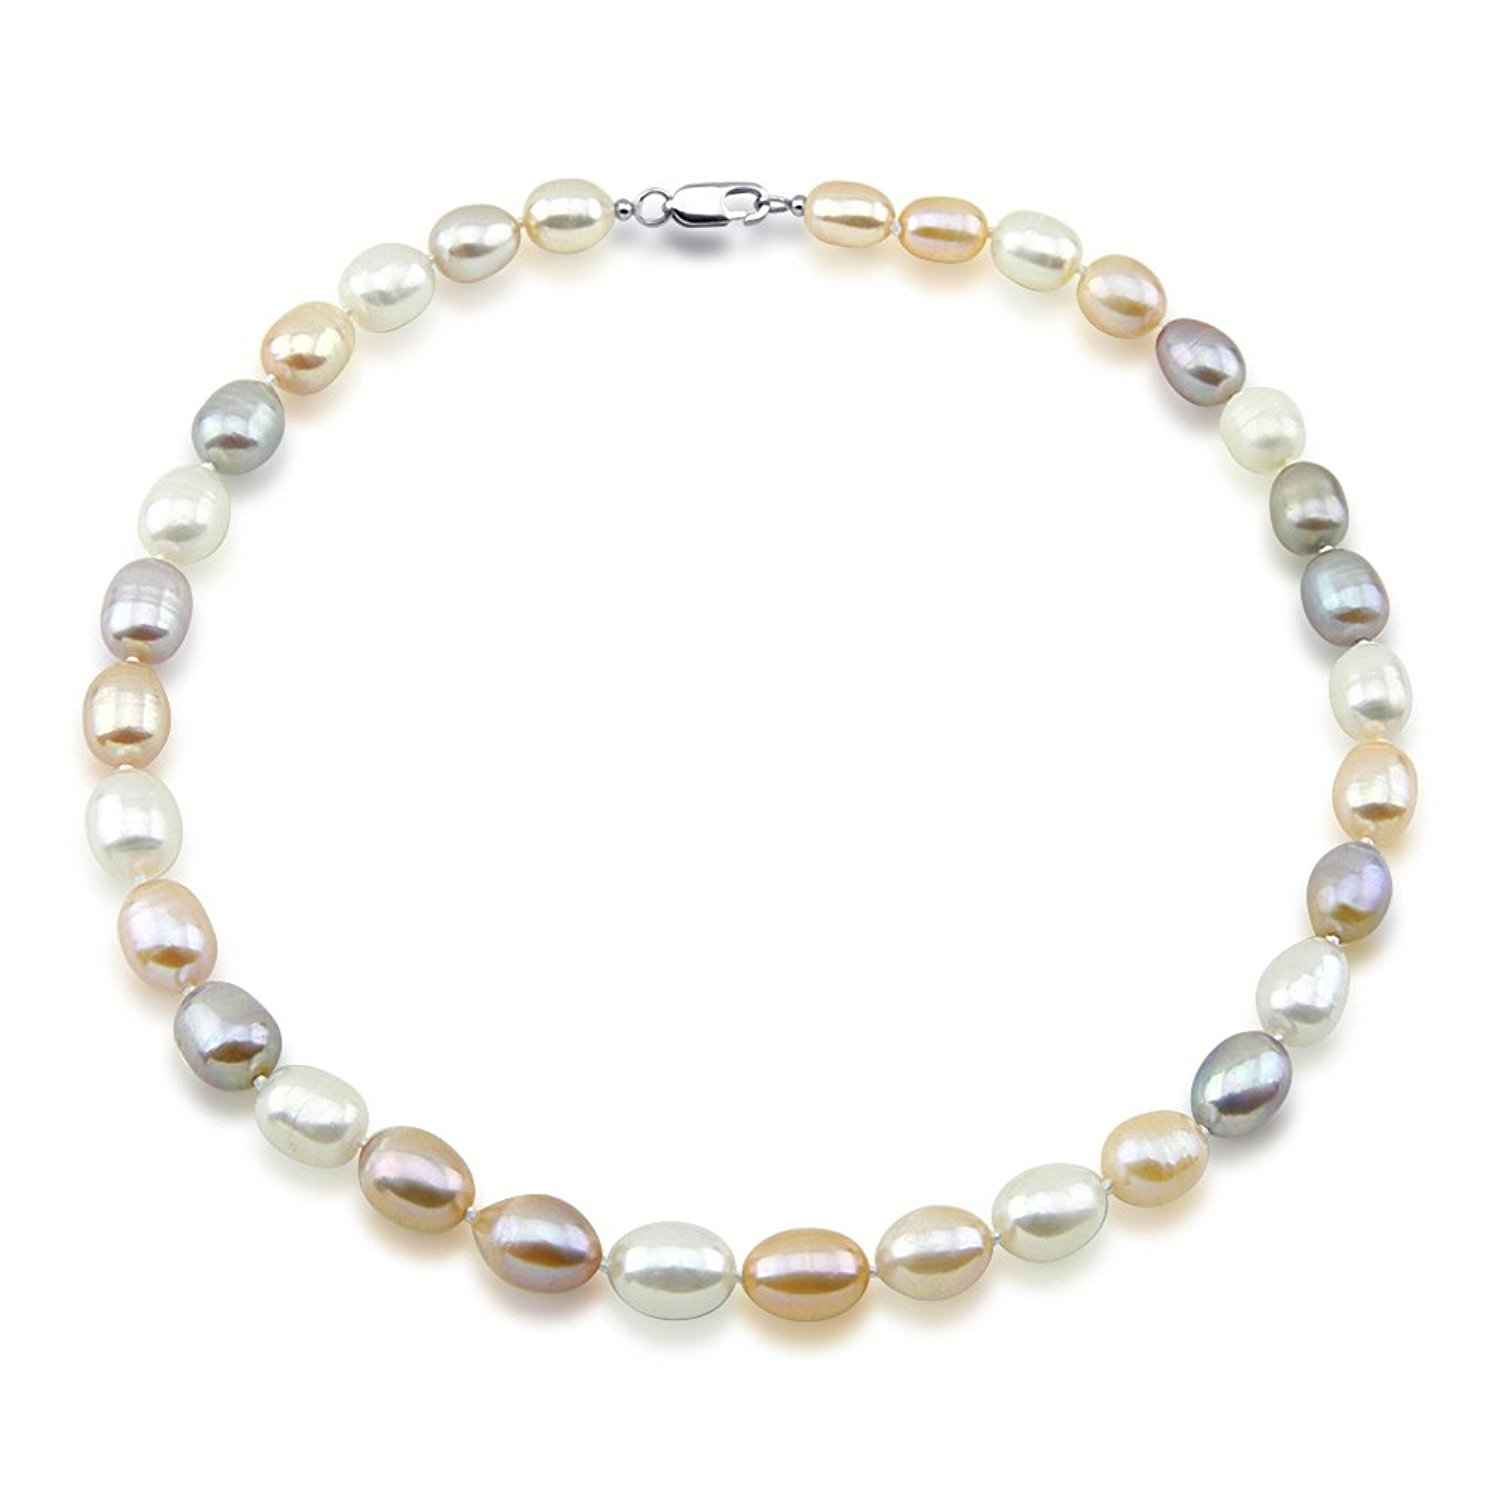 Multi-Color Rice Freshwater Cultured Pearl Necklace 9-10mm pearls, 20 inches